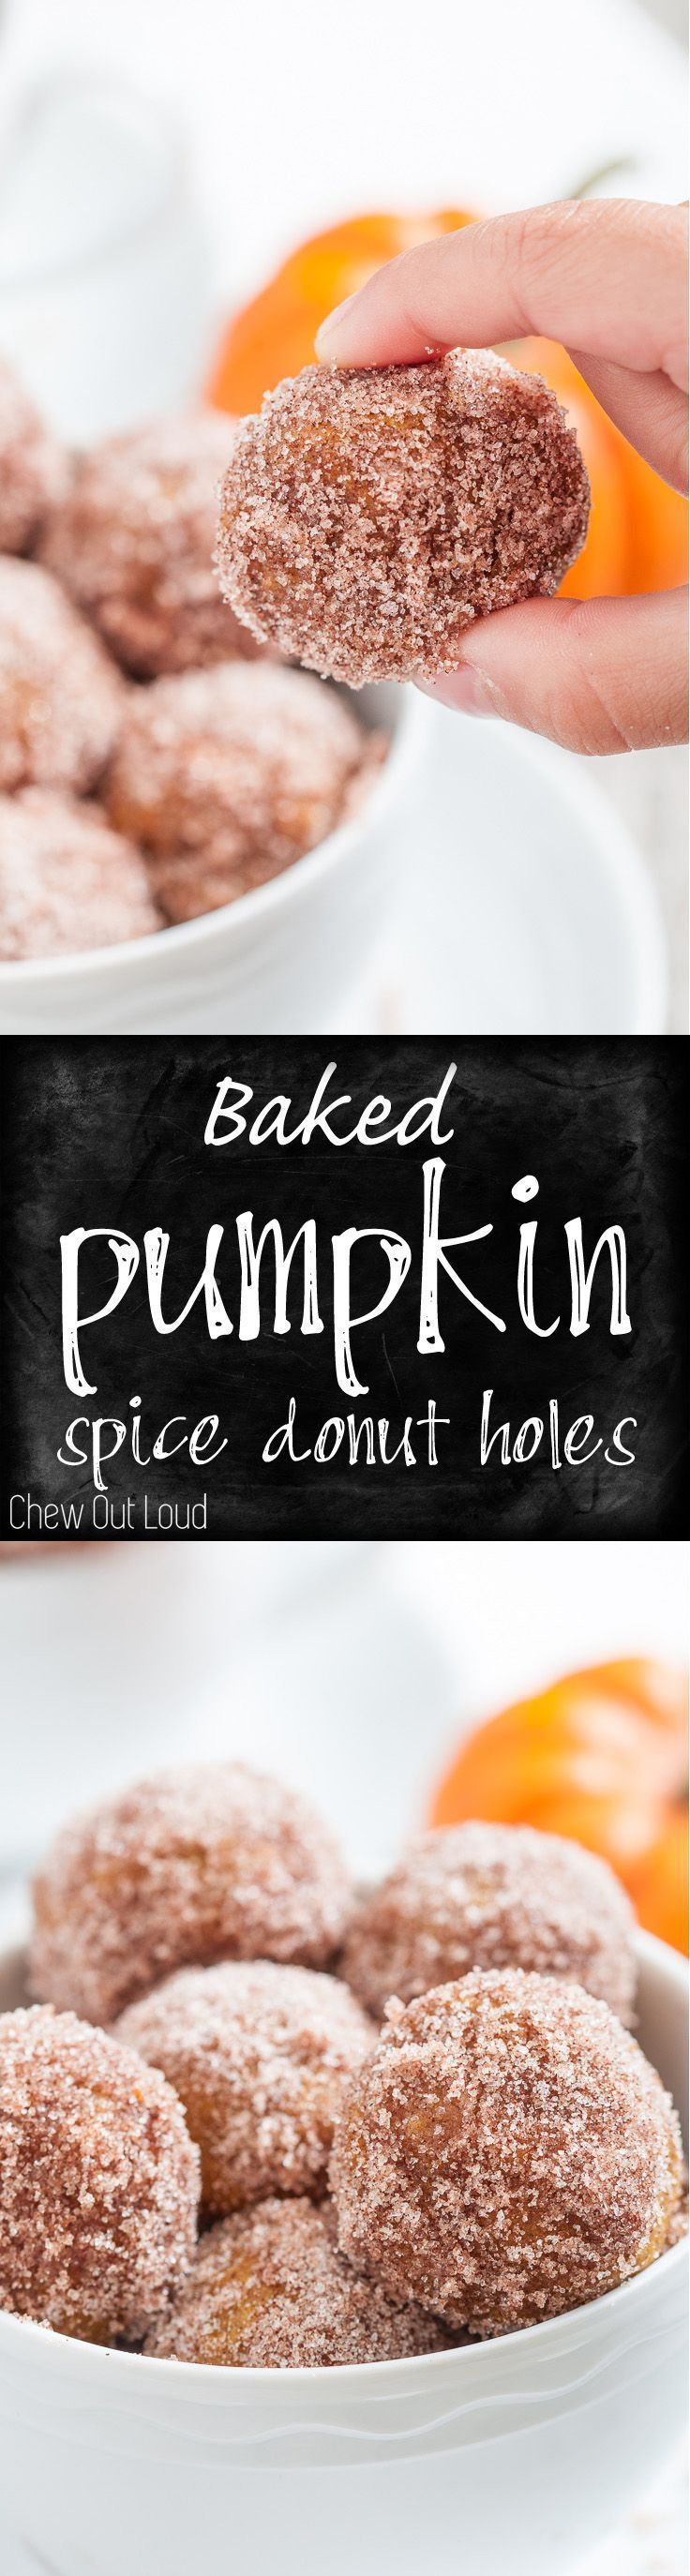 The perfect fall fun treat! Delicious for breakfast, brunch, or snack. Baked, not fried. A fall favorite. #pumpkin #donut #breakfast www.chewoutloud.com